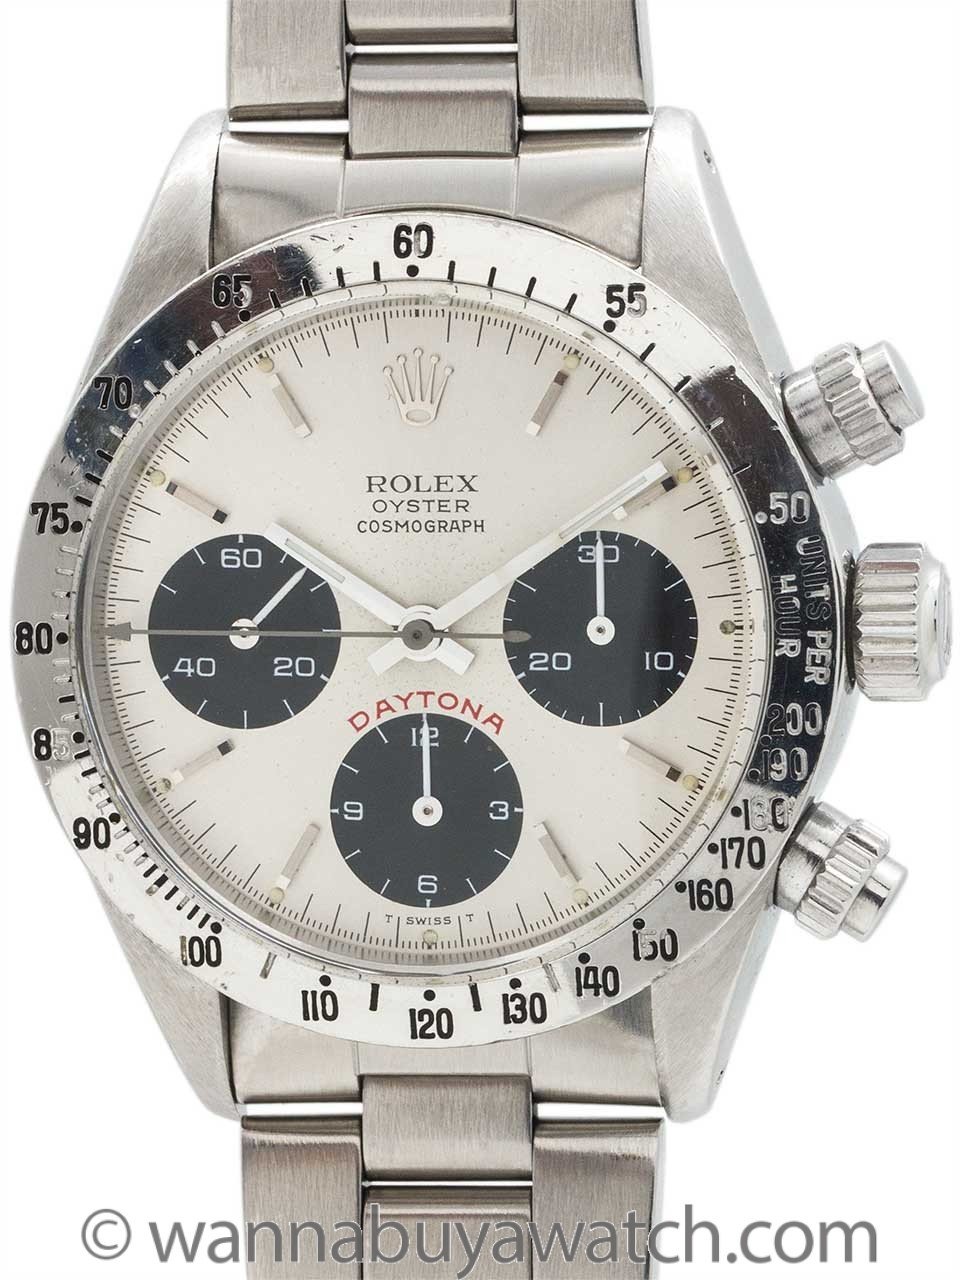 Rolex Daytona ref 6265 Big Red circa 1978